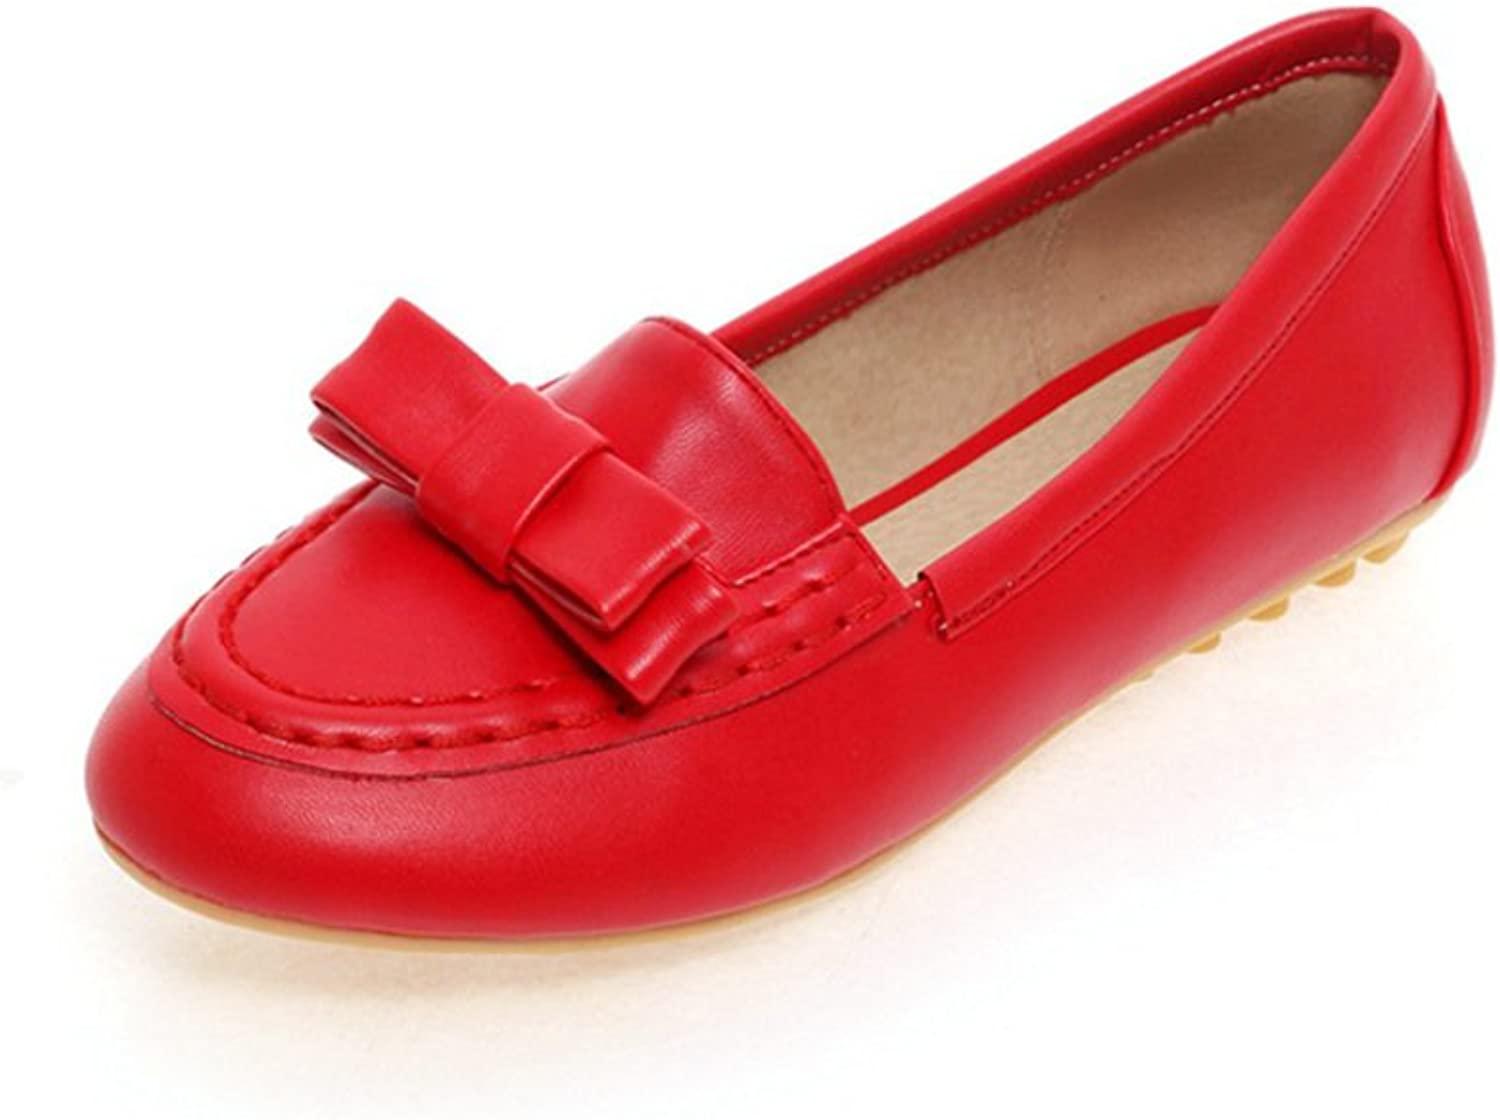 RHFDVGDS Round head light in spring and summer bow flat flat shoes to work Doug fashion leisure shoes